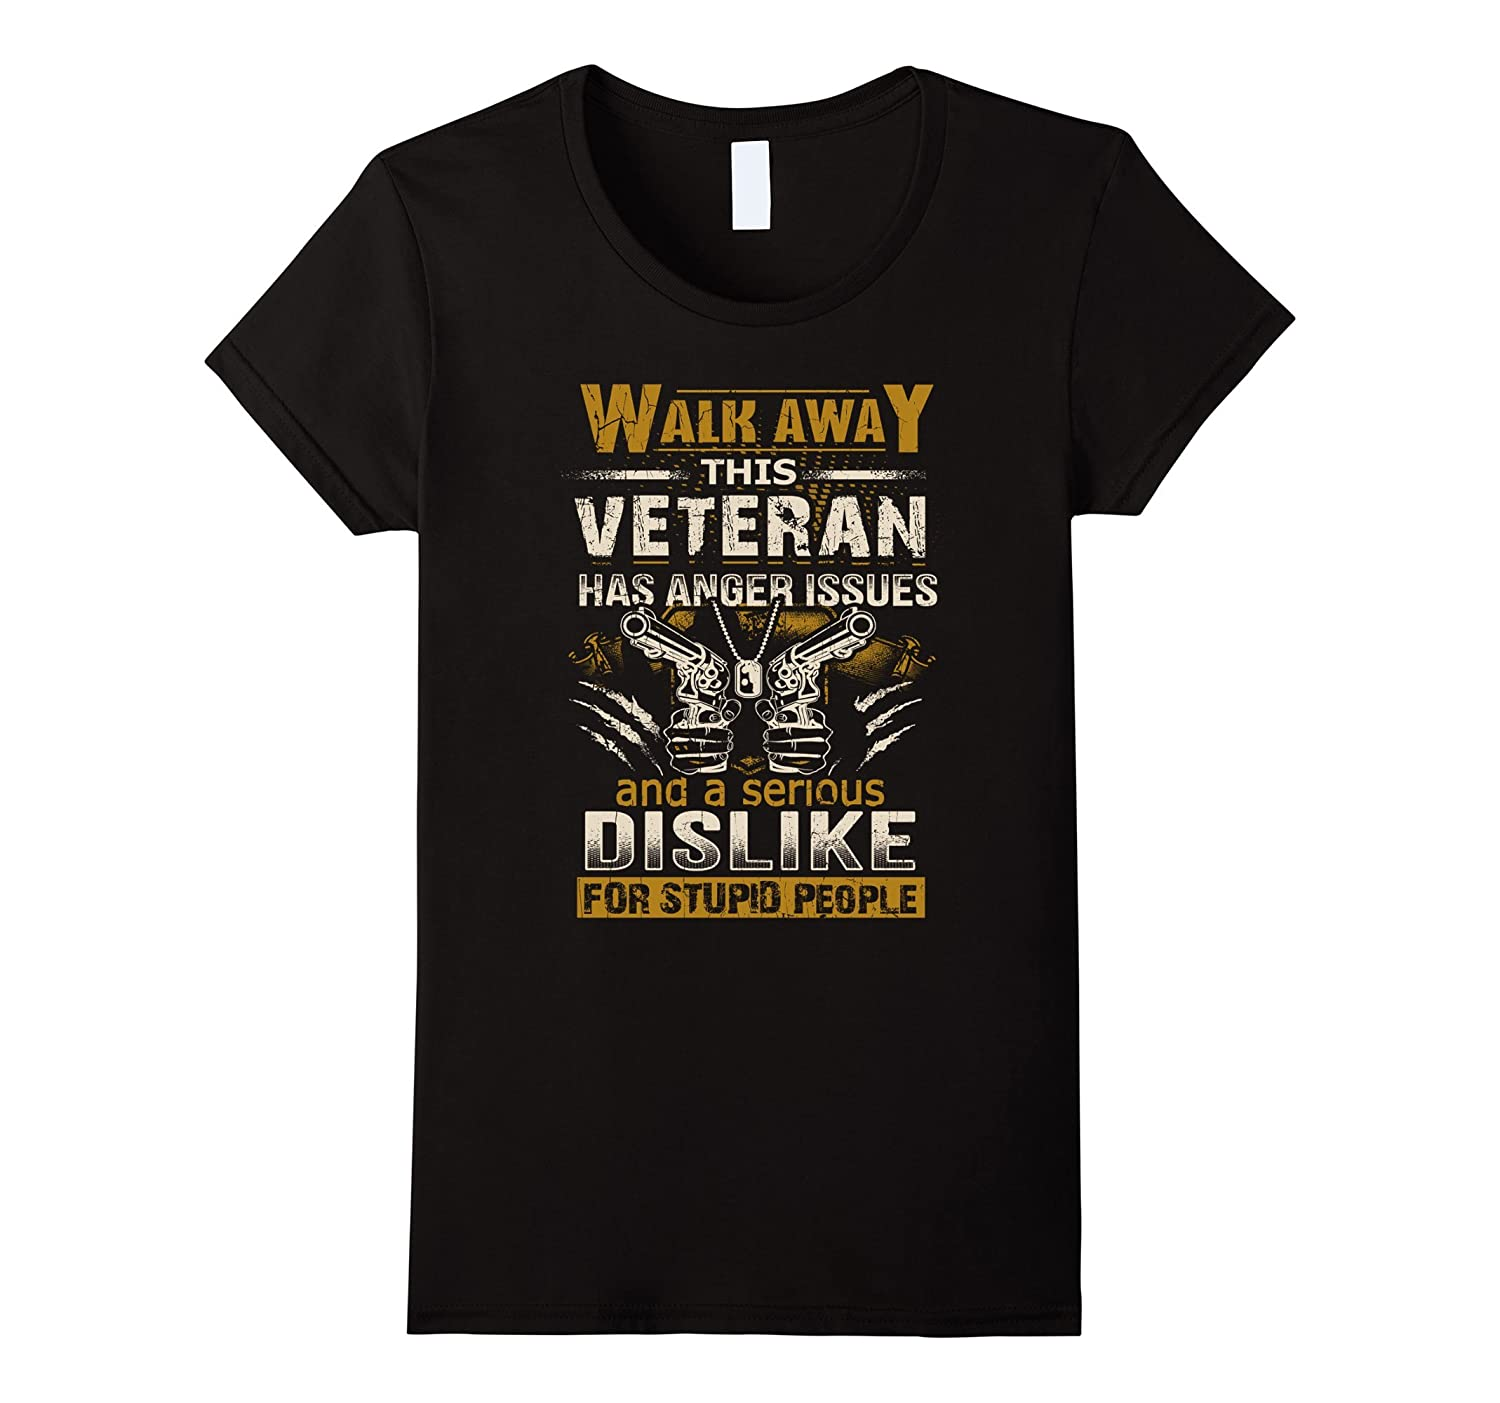 VETERAN Shirt, Walk Away This Veteran Has Anger Issues Shirt